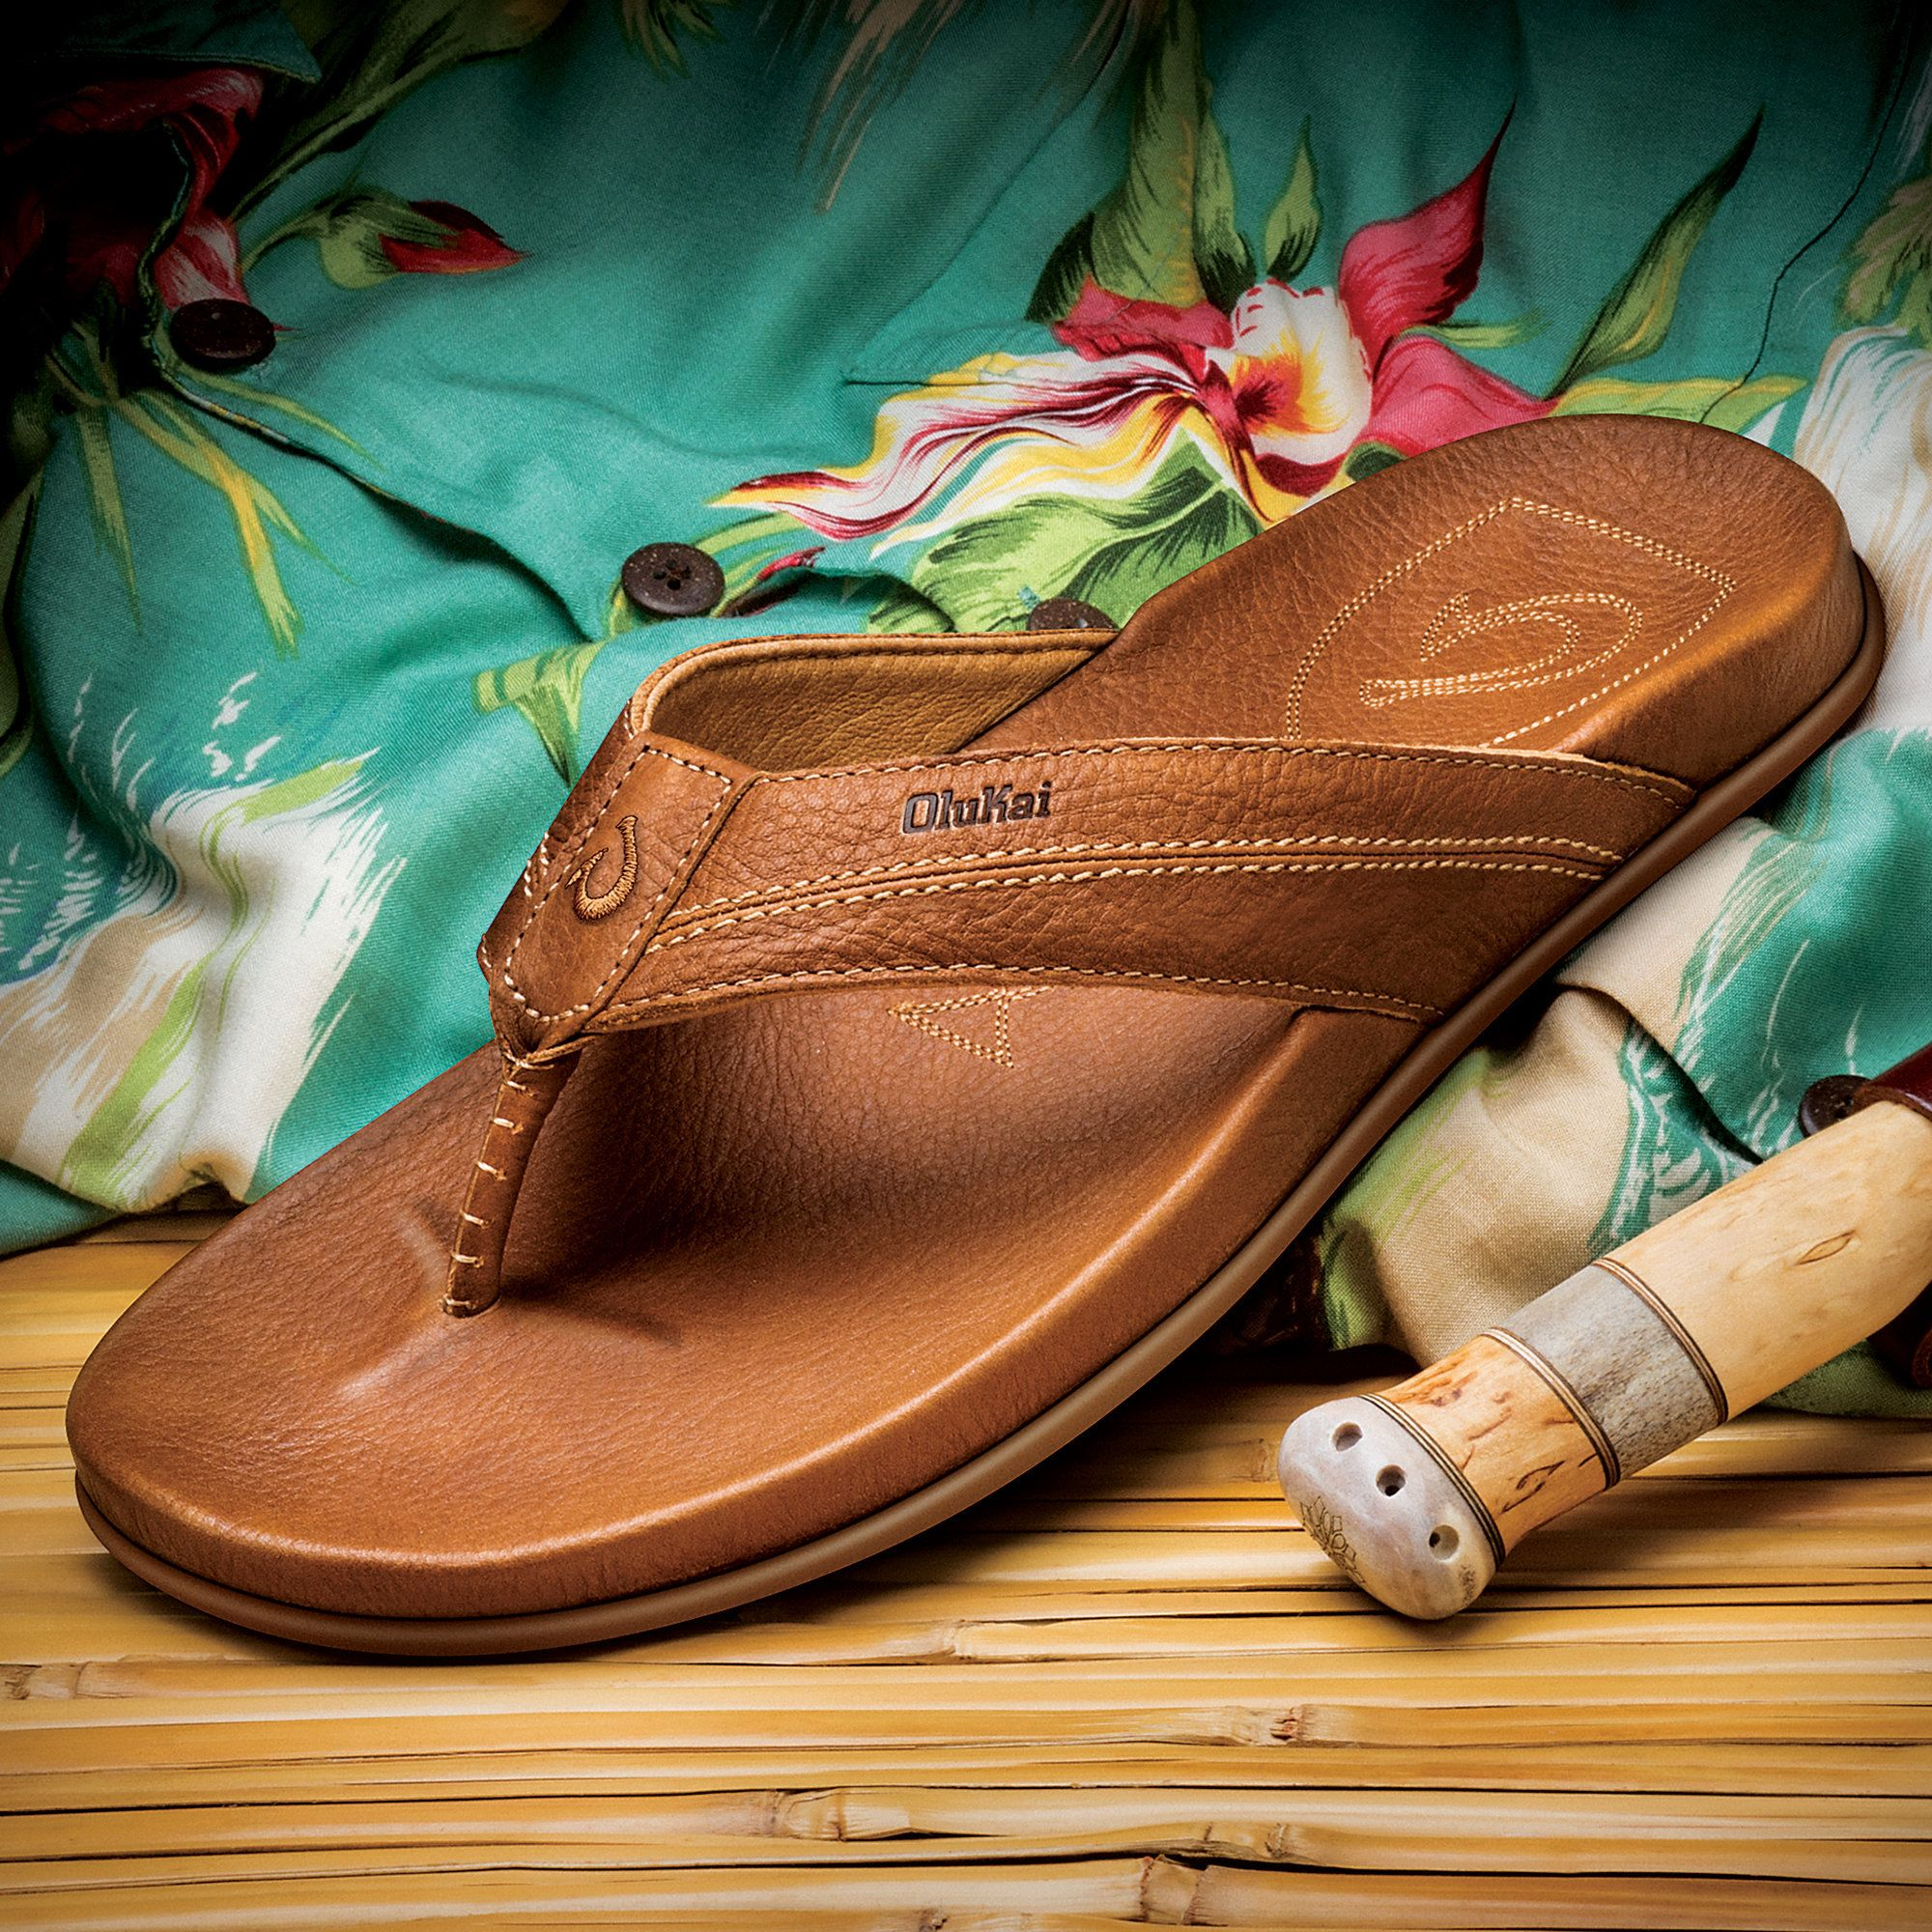 679dfe9ce9de OluKai Men s Mohalu Sandal  Hawaiian Inspired Design for Your Most  Comfortable